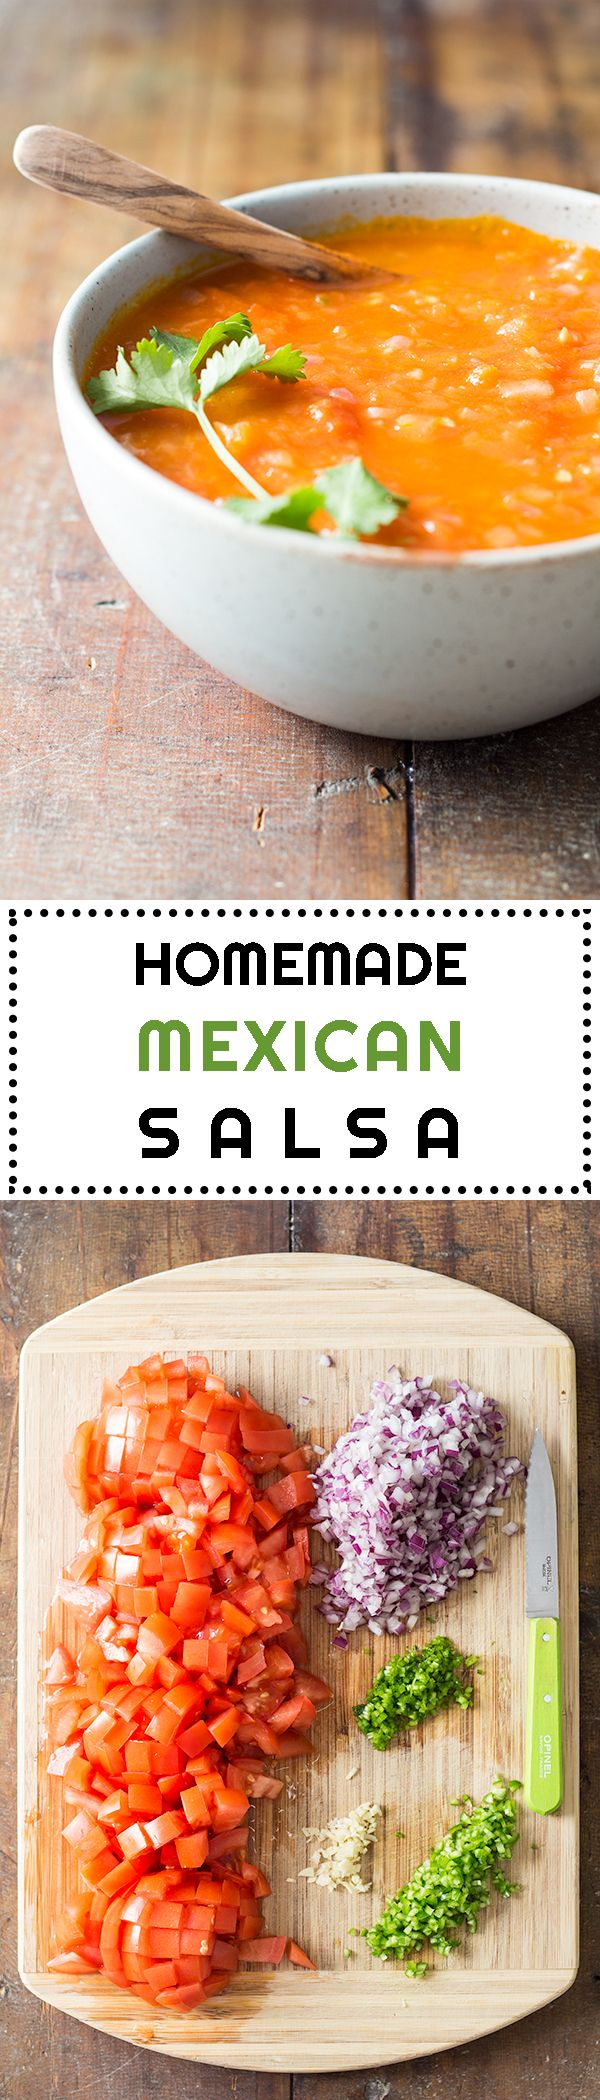 An authentic and healthy HOMEMADE MEXICAN SALSA recipe to dip in your corn tortilla chips, spice up your tacos or use as a base for your huevos rancheros.